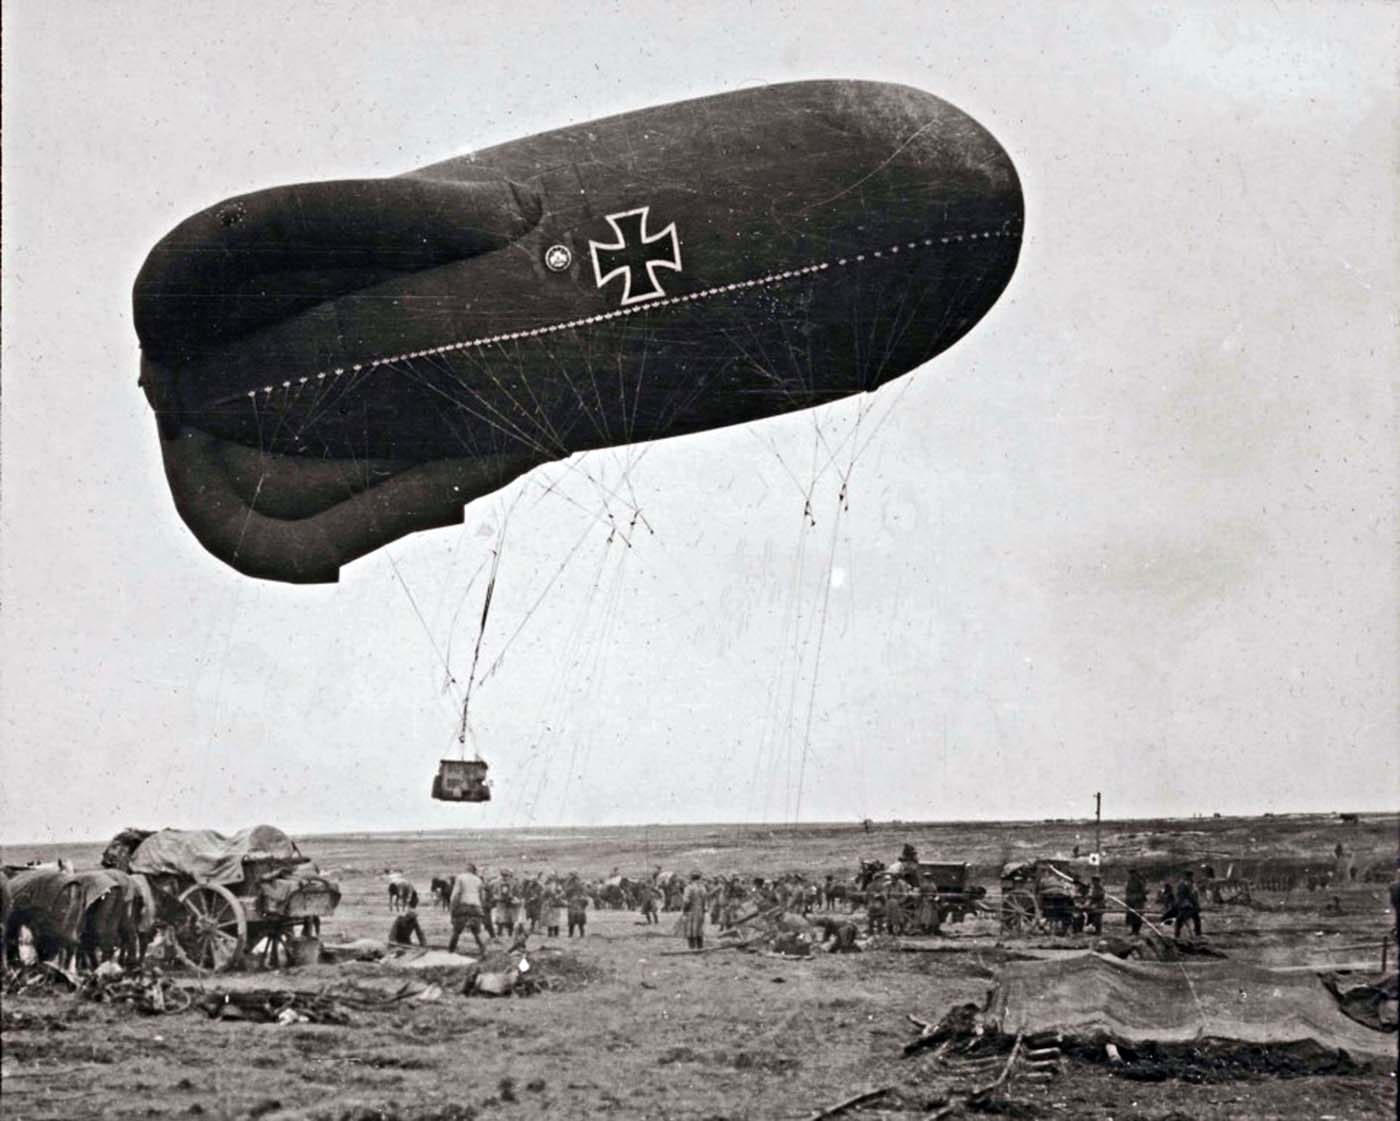 A German observation balloon takes off to direct artillery fire at the Somme in 1916. Walter Kleinfeldt was fascinated with the latest machinery of war.